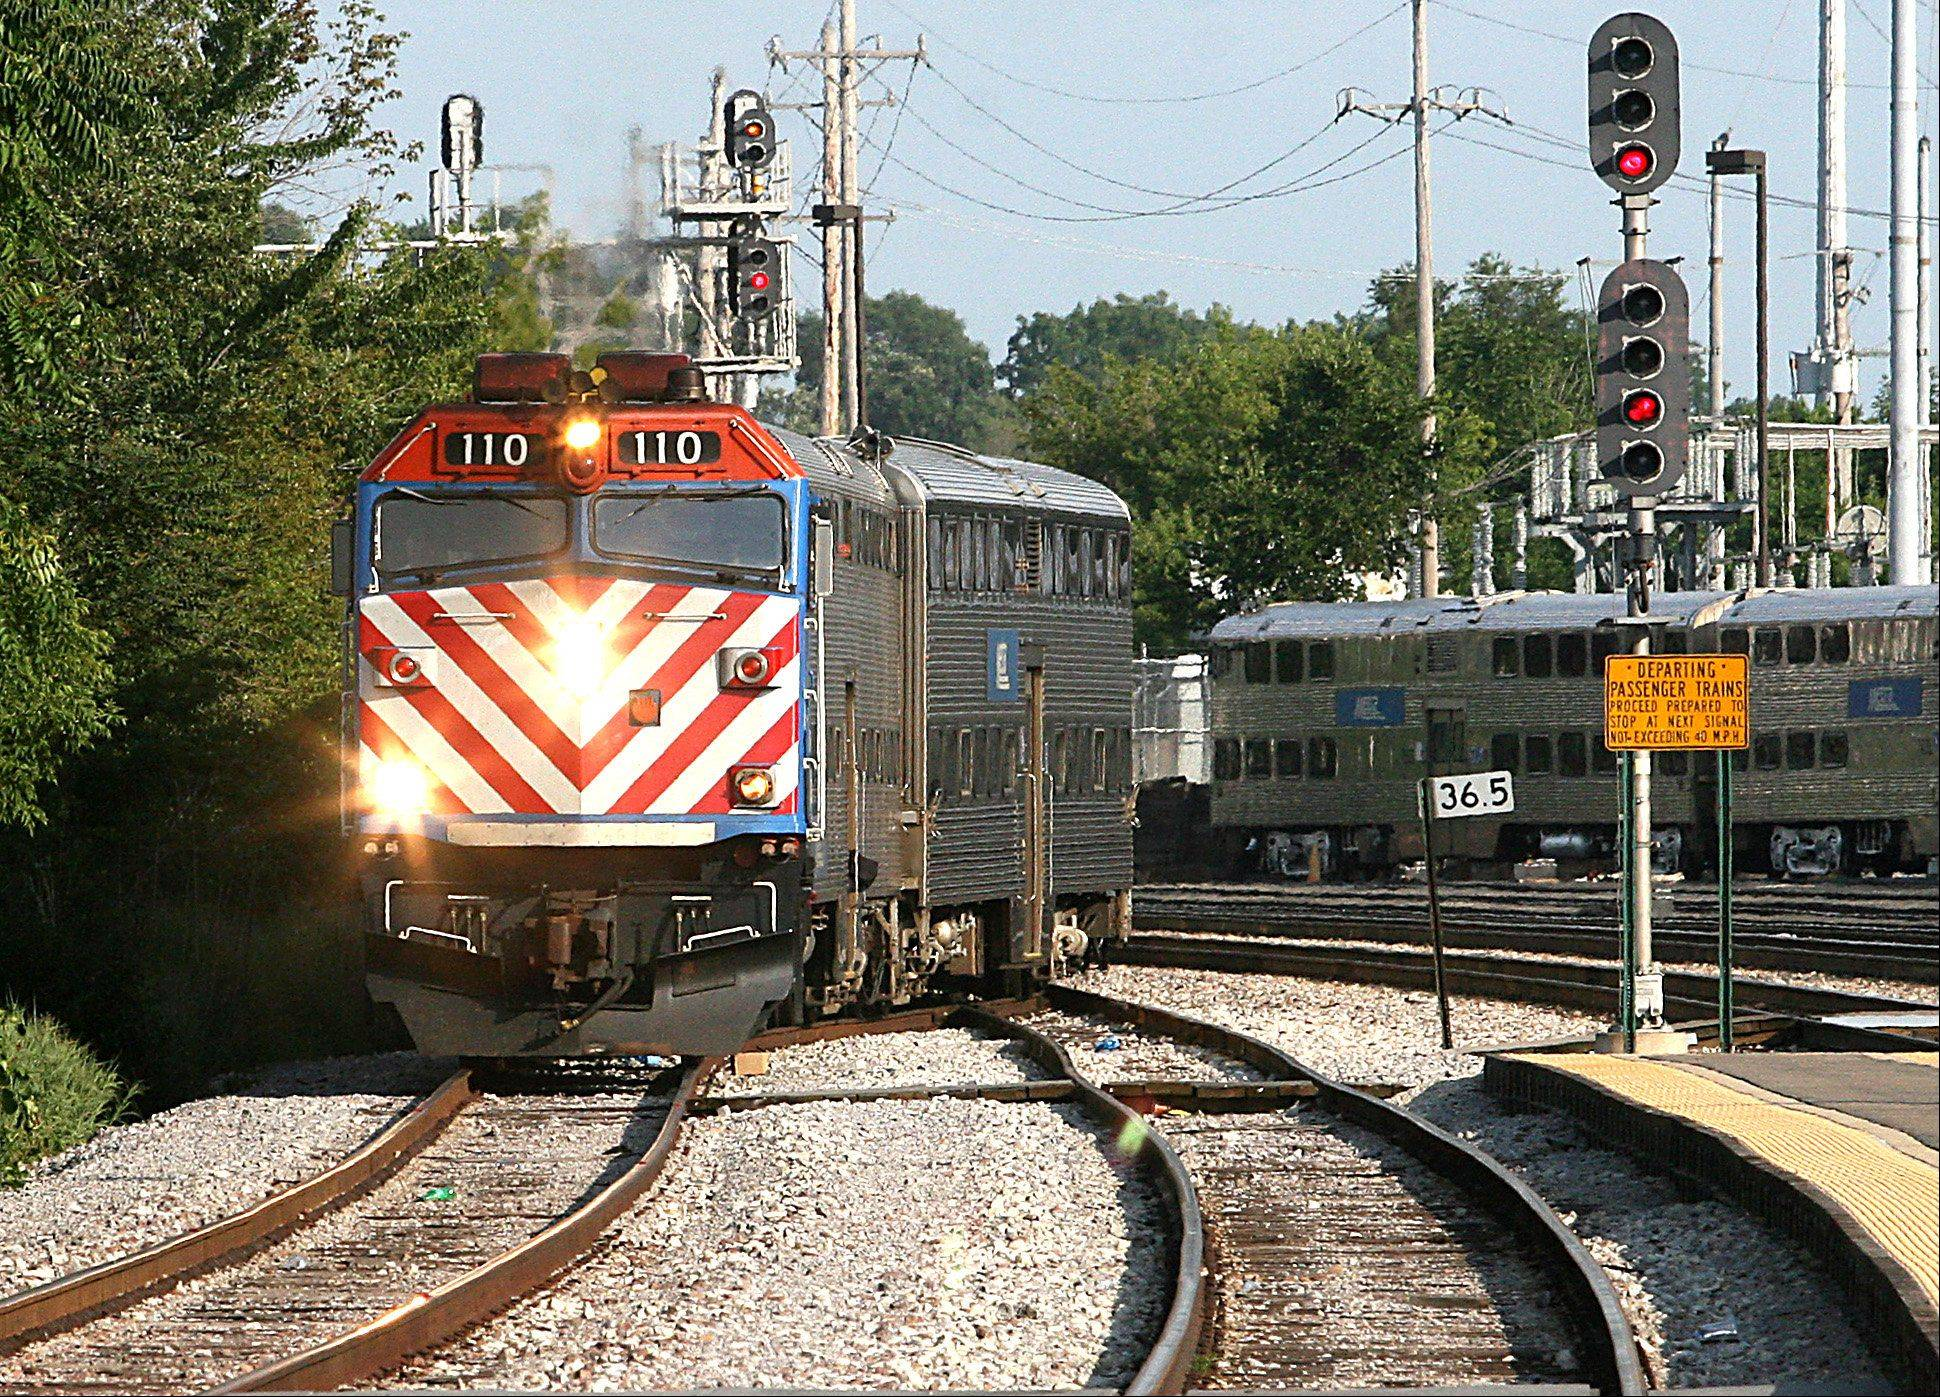 Editorial: The steady vanishing of Metra's board